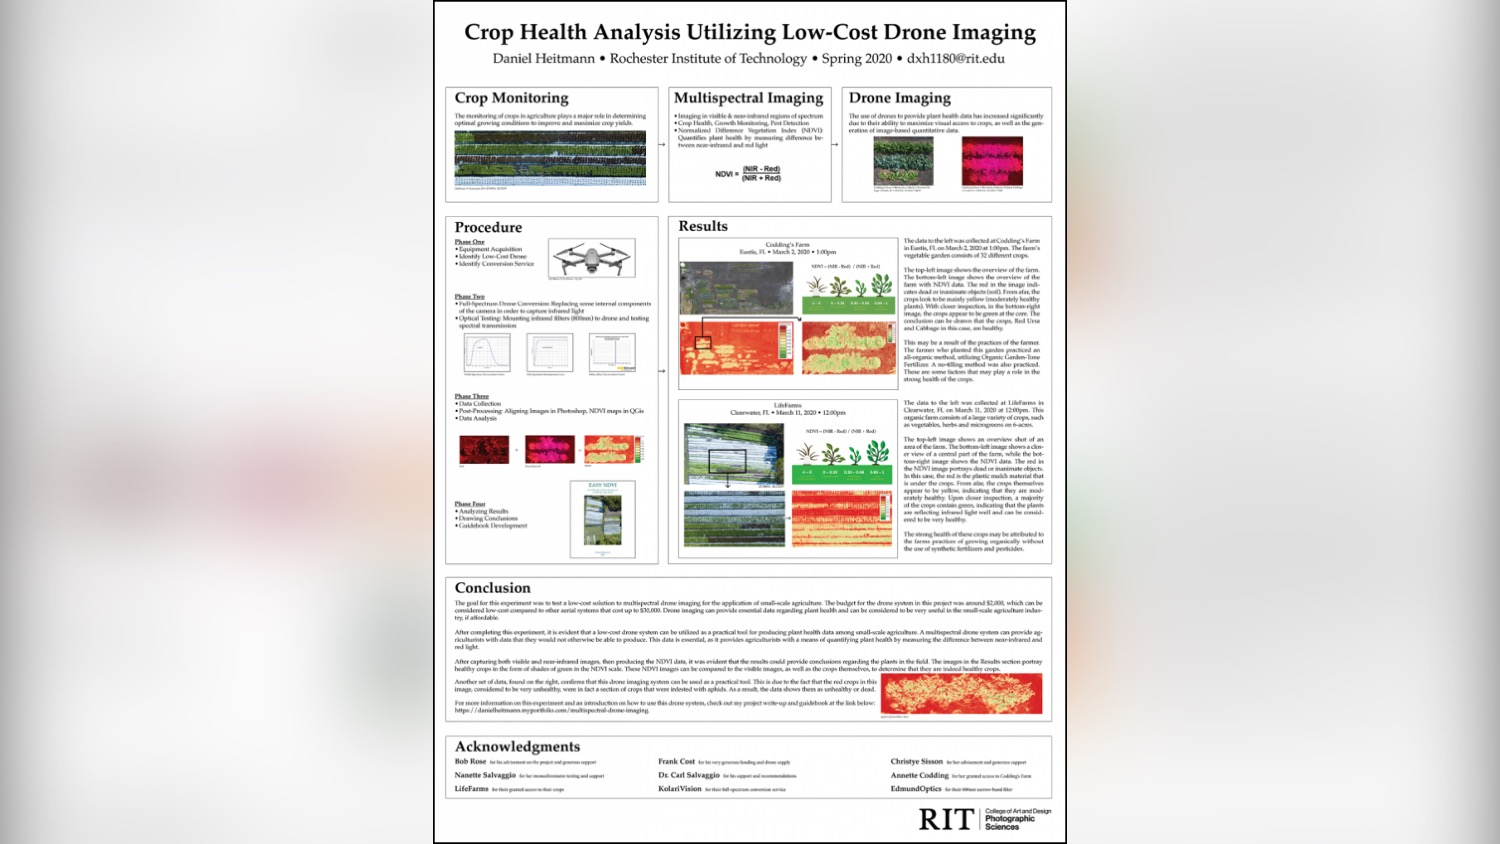 A poster describing crop health analysis using low-cost drone imaging.